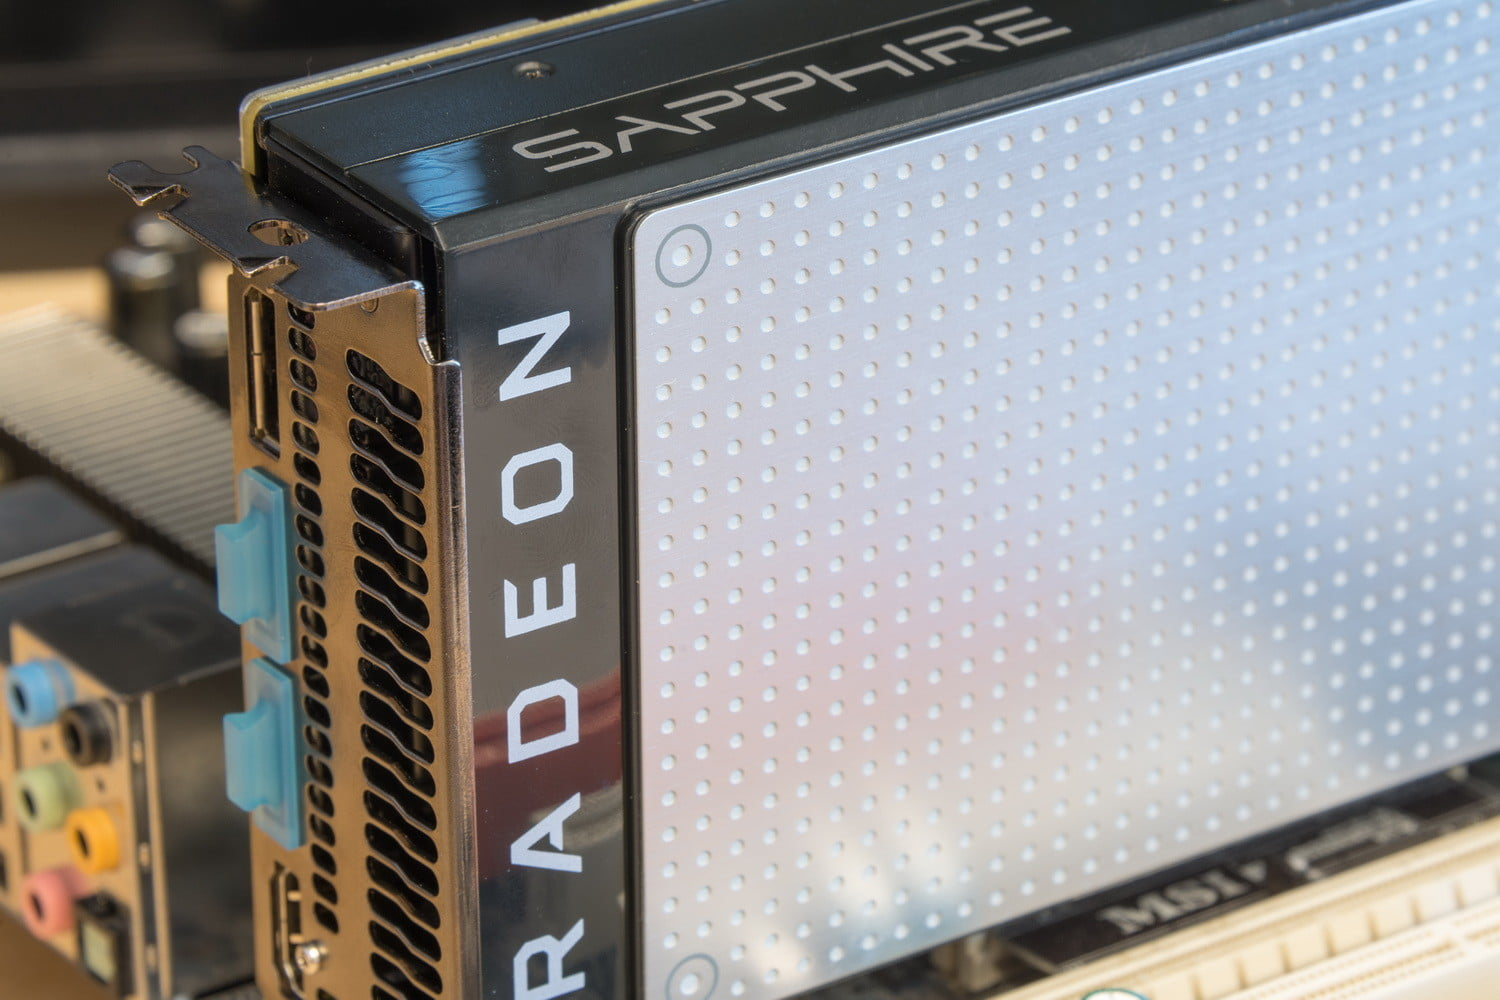 AMD's latest Radeon driver doesn't support 32-bit version of